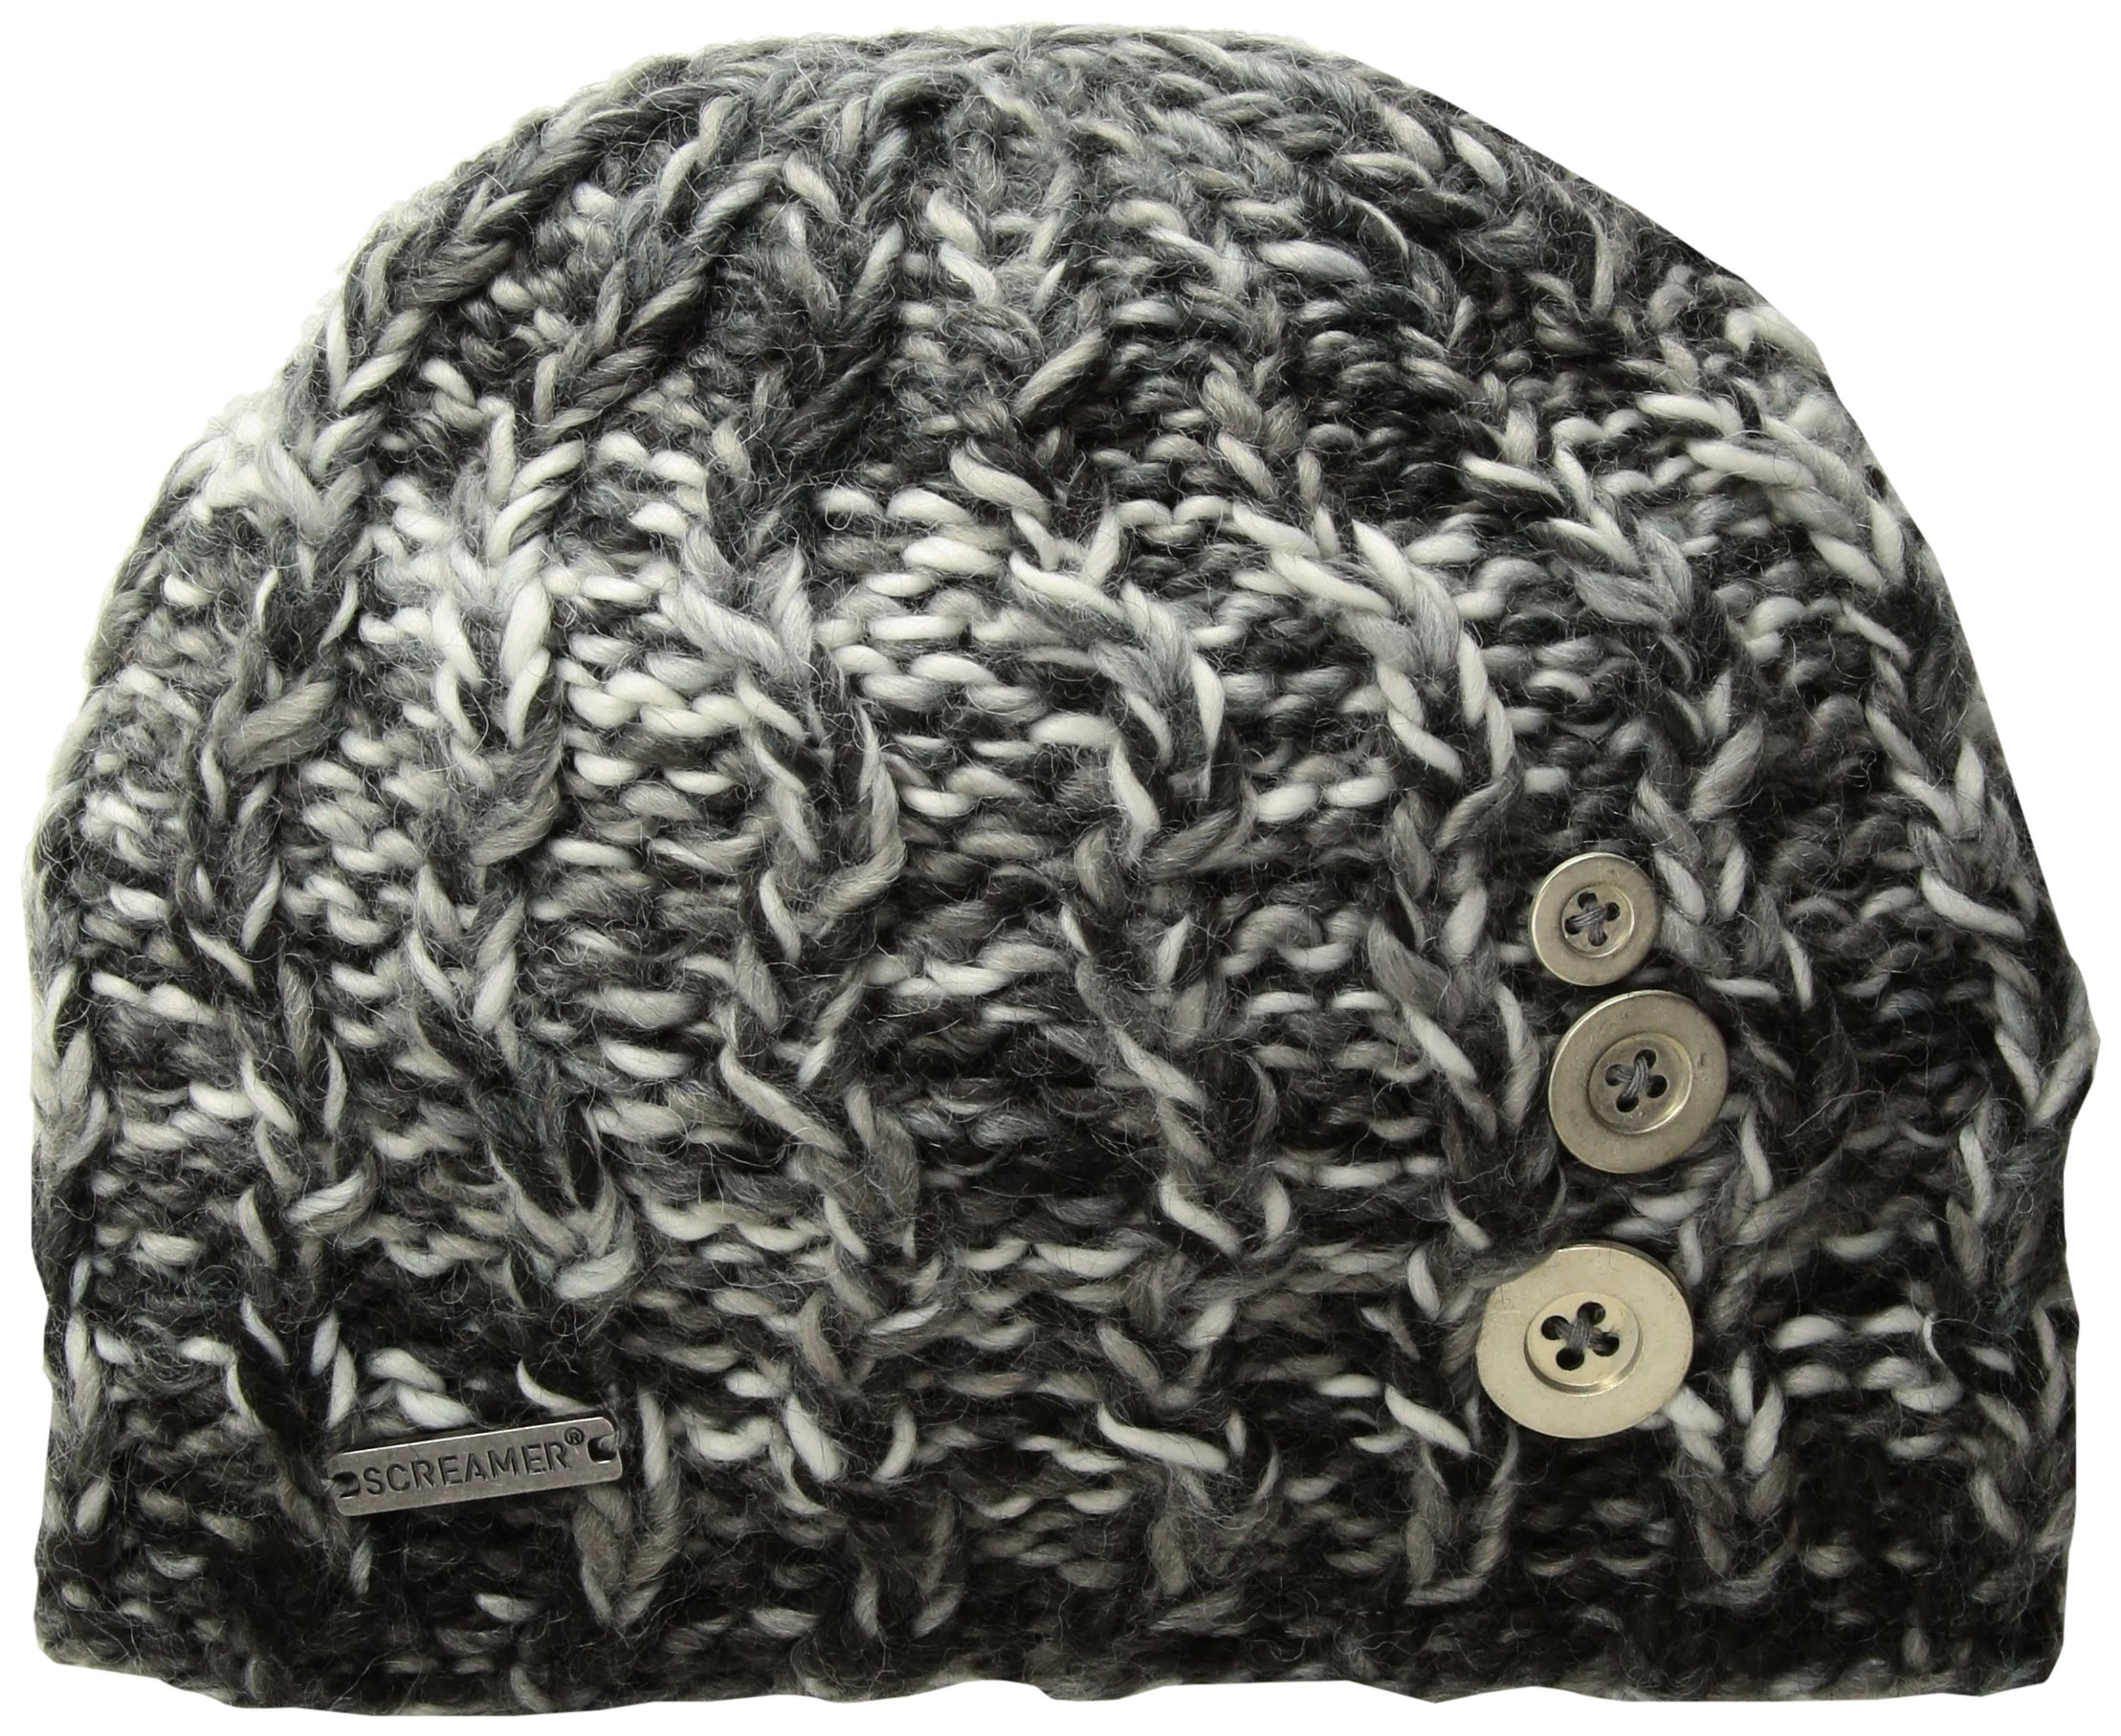 Screamer Tapestry Buttons Beanie, Black/Charcoal/Pearl, One Size